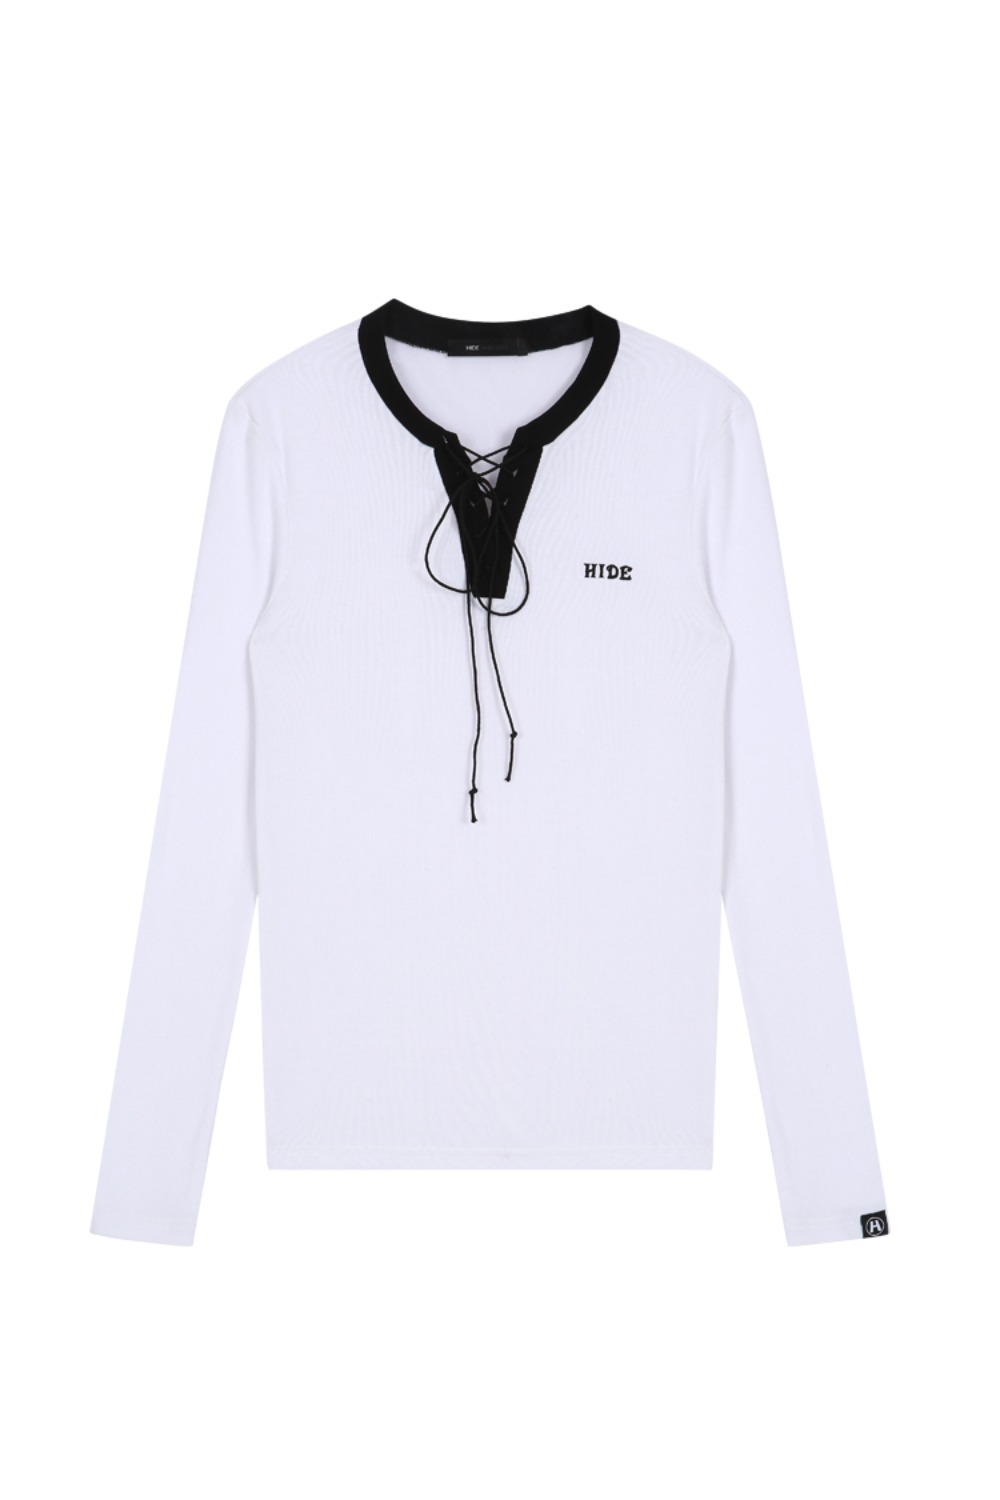 HIDE Laceup T-shirt IVORY